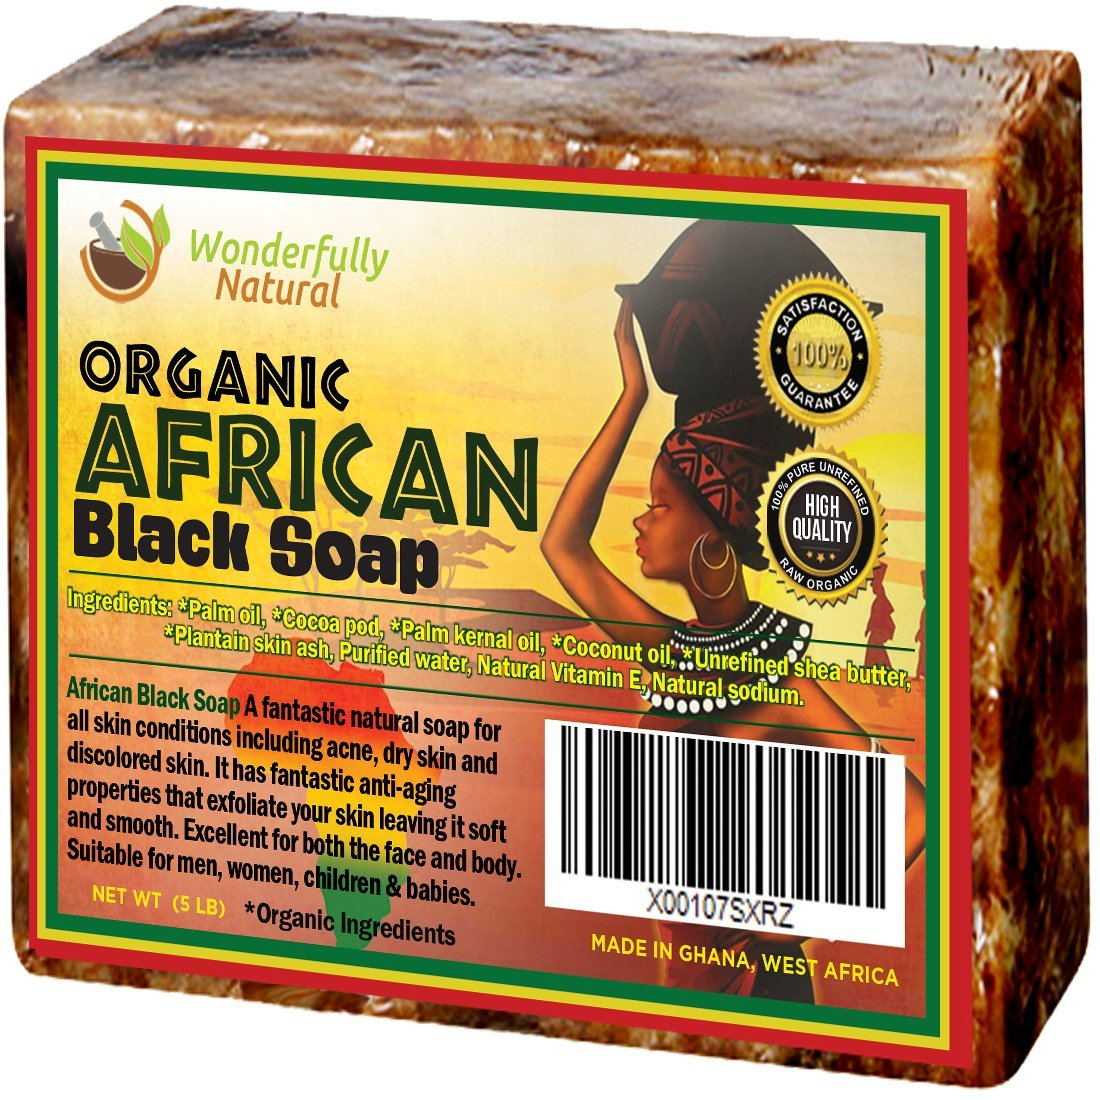 Organic African Black Soap antifungal soap for yeast infection